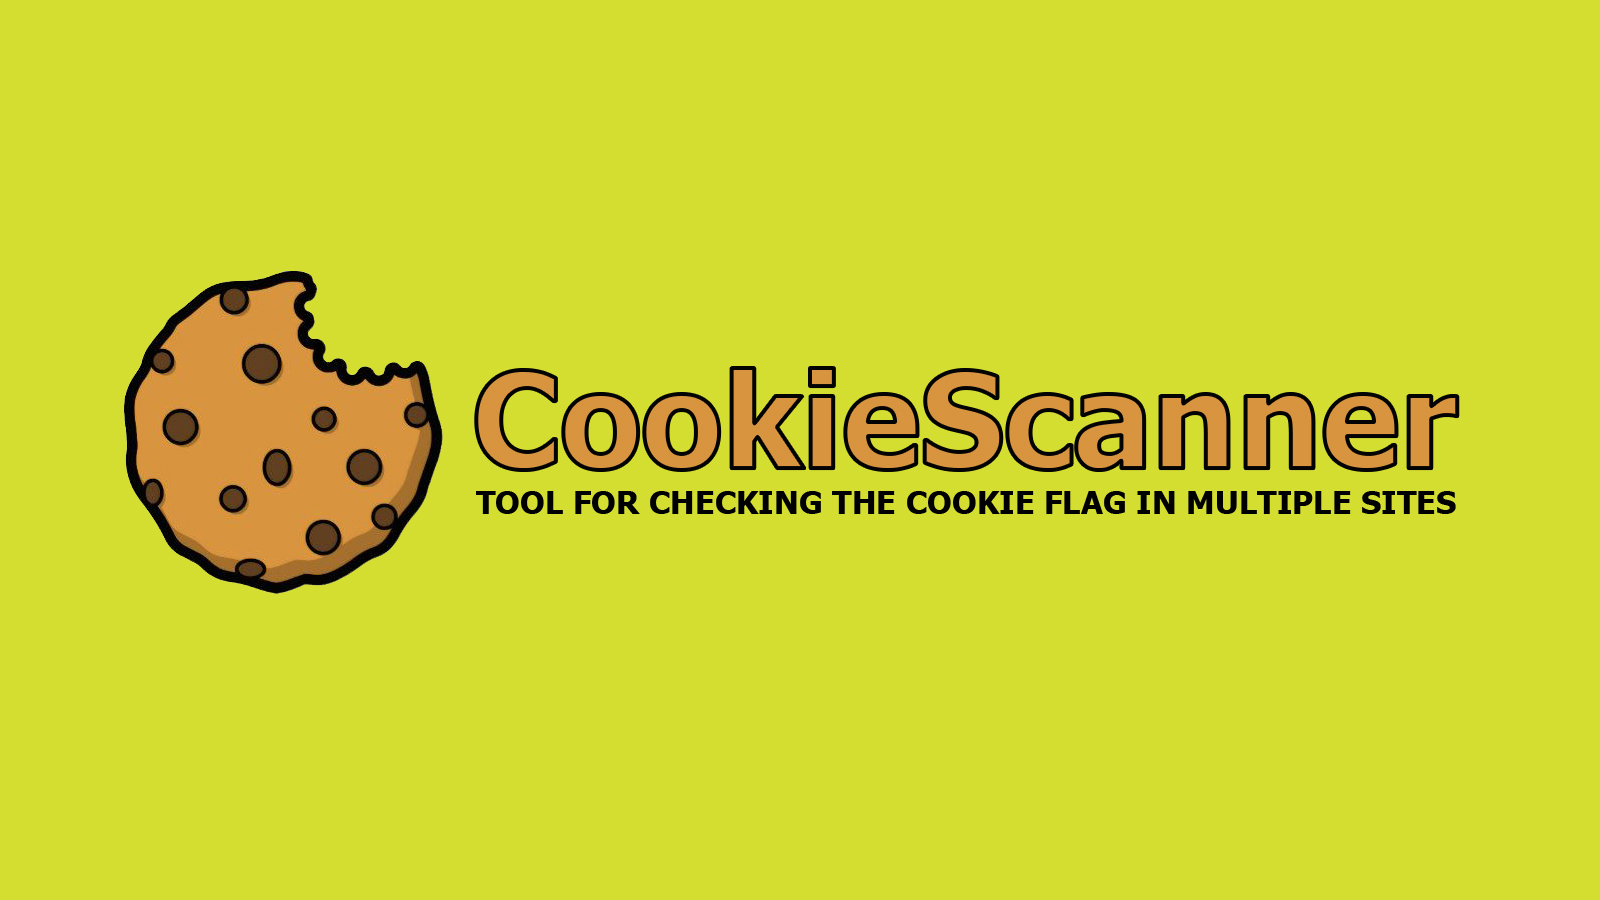 CookieScanner - Tool For Checking the Cookie Flag In Multiple Sites